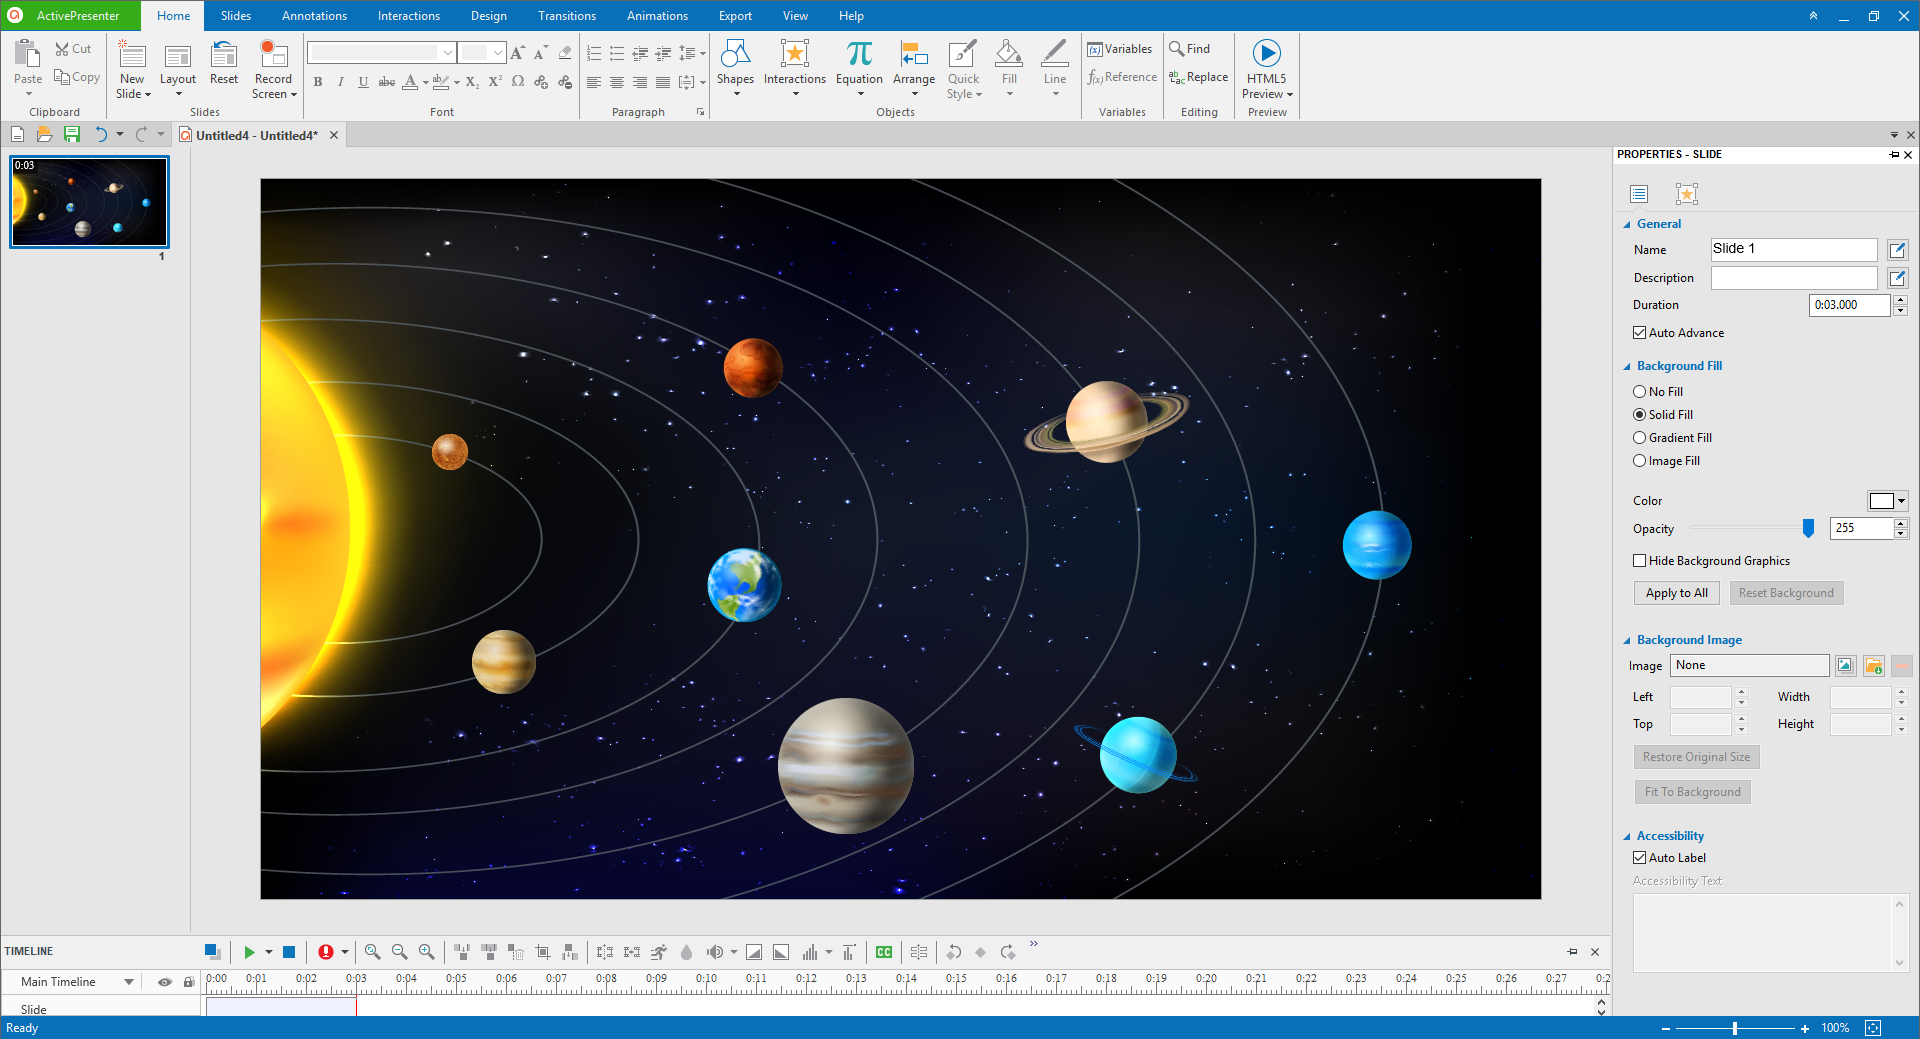 Add planets' images to creat interactive images